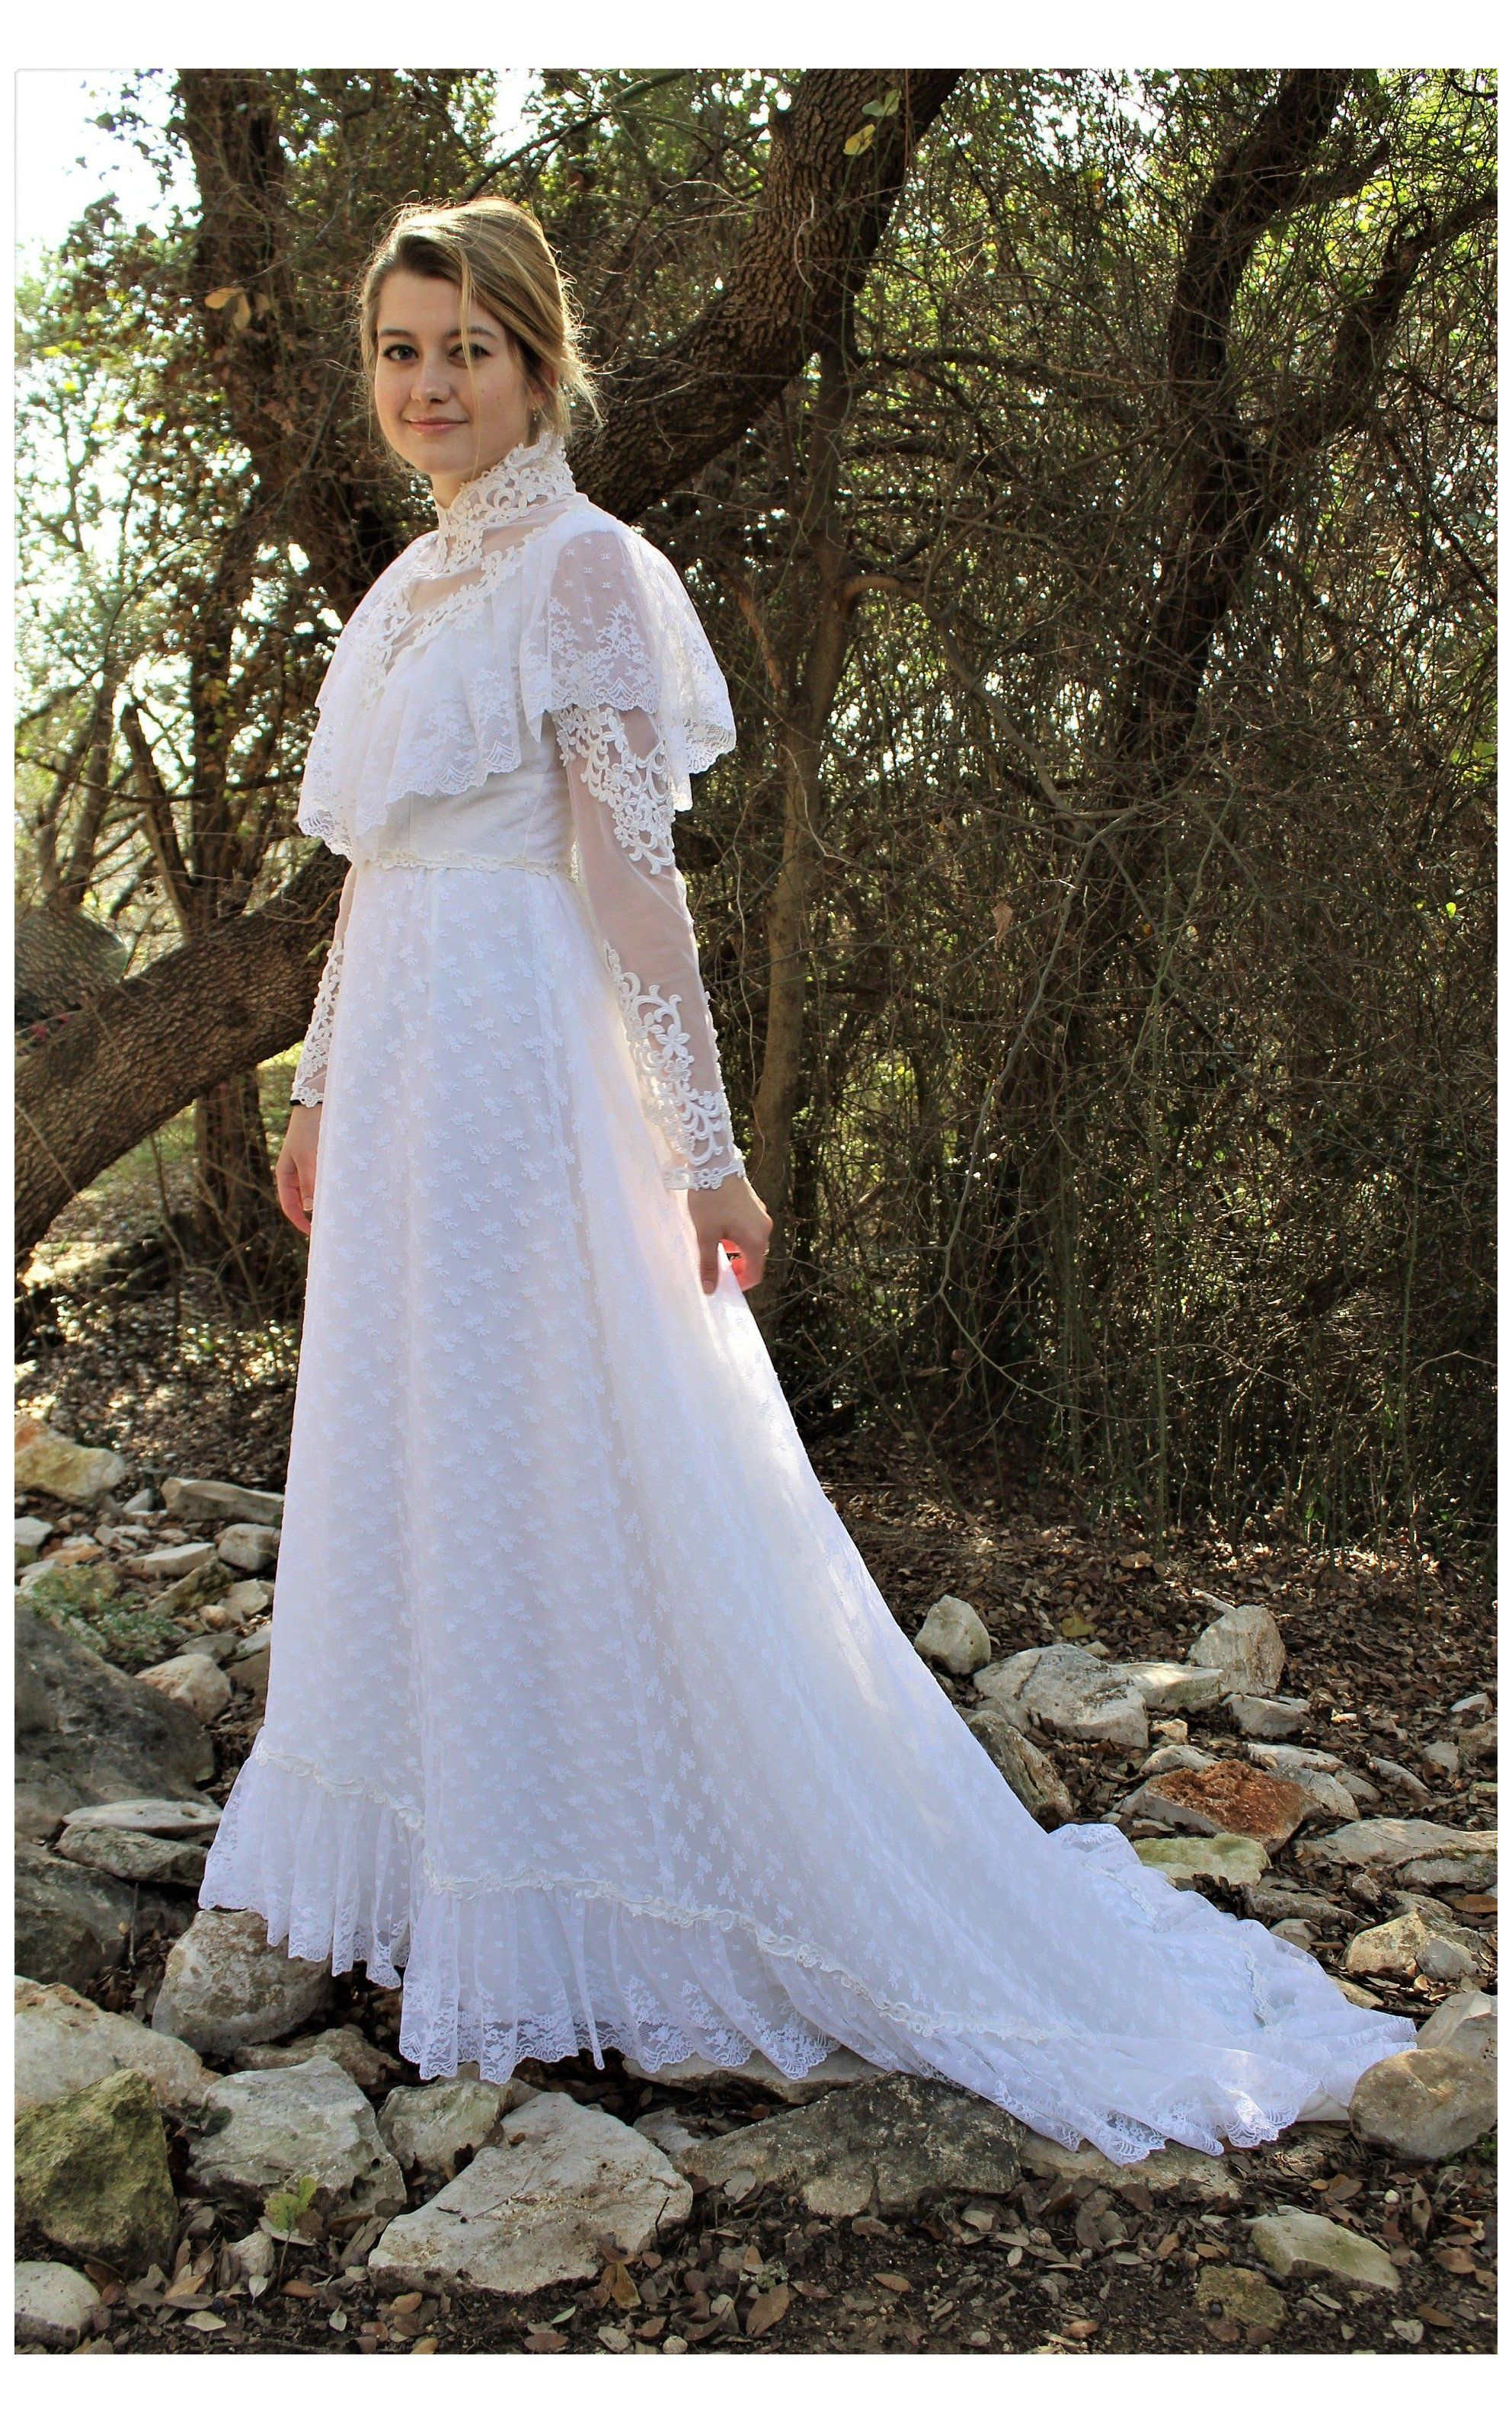 Long Sleeved Wedding Gown   XS/S, Vintage Wedding Gown, Boho ...